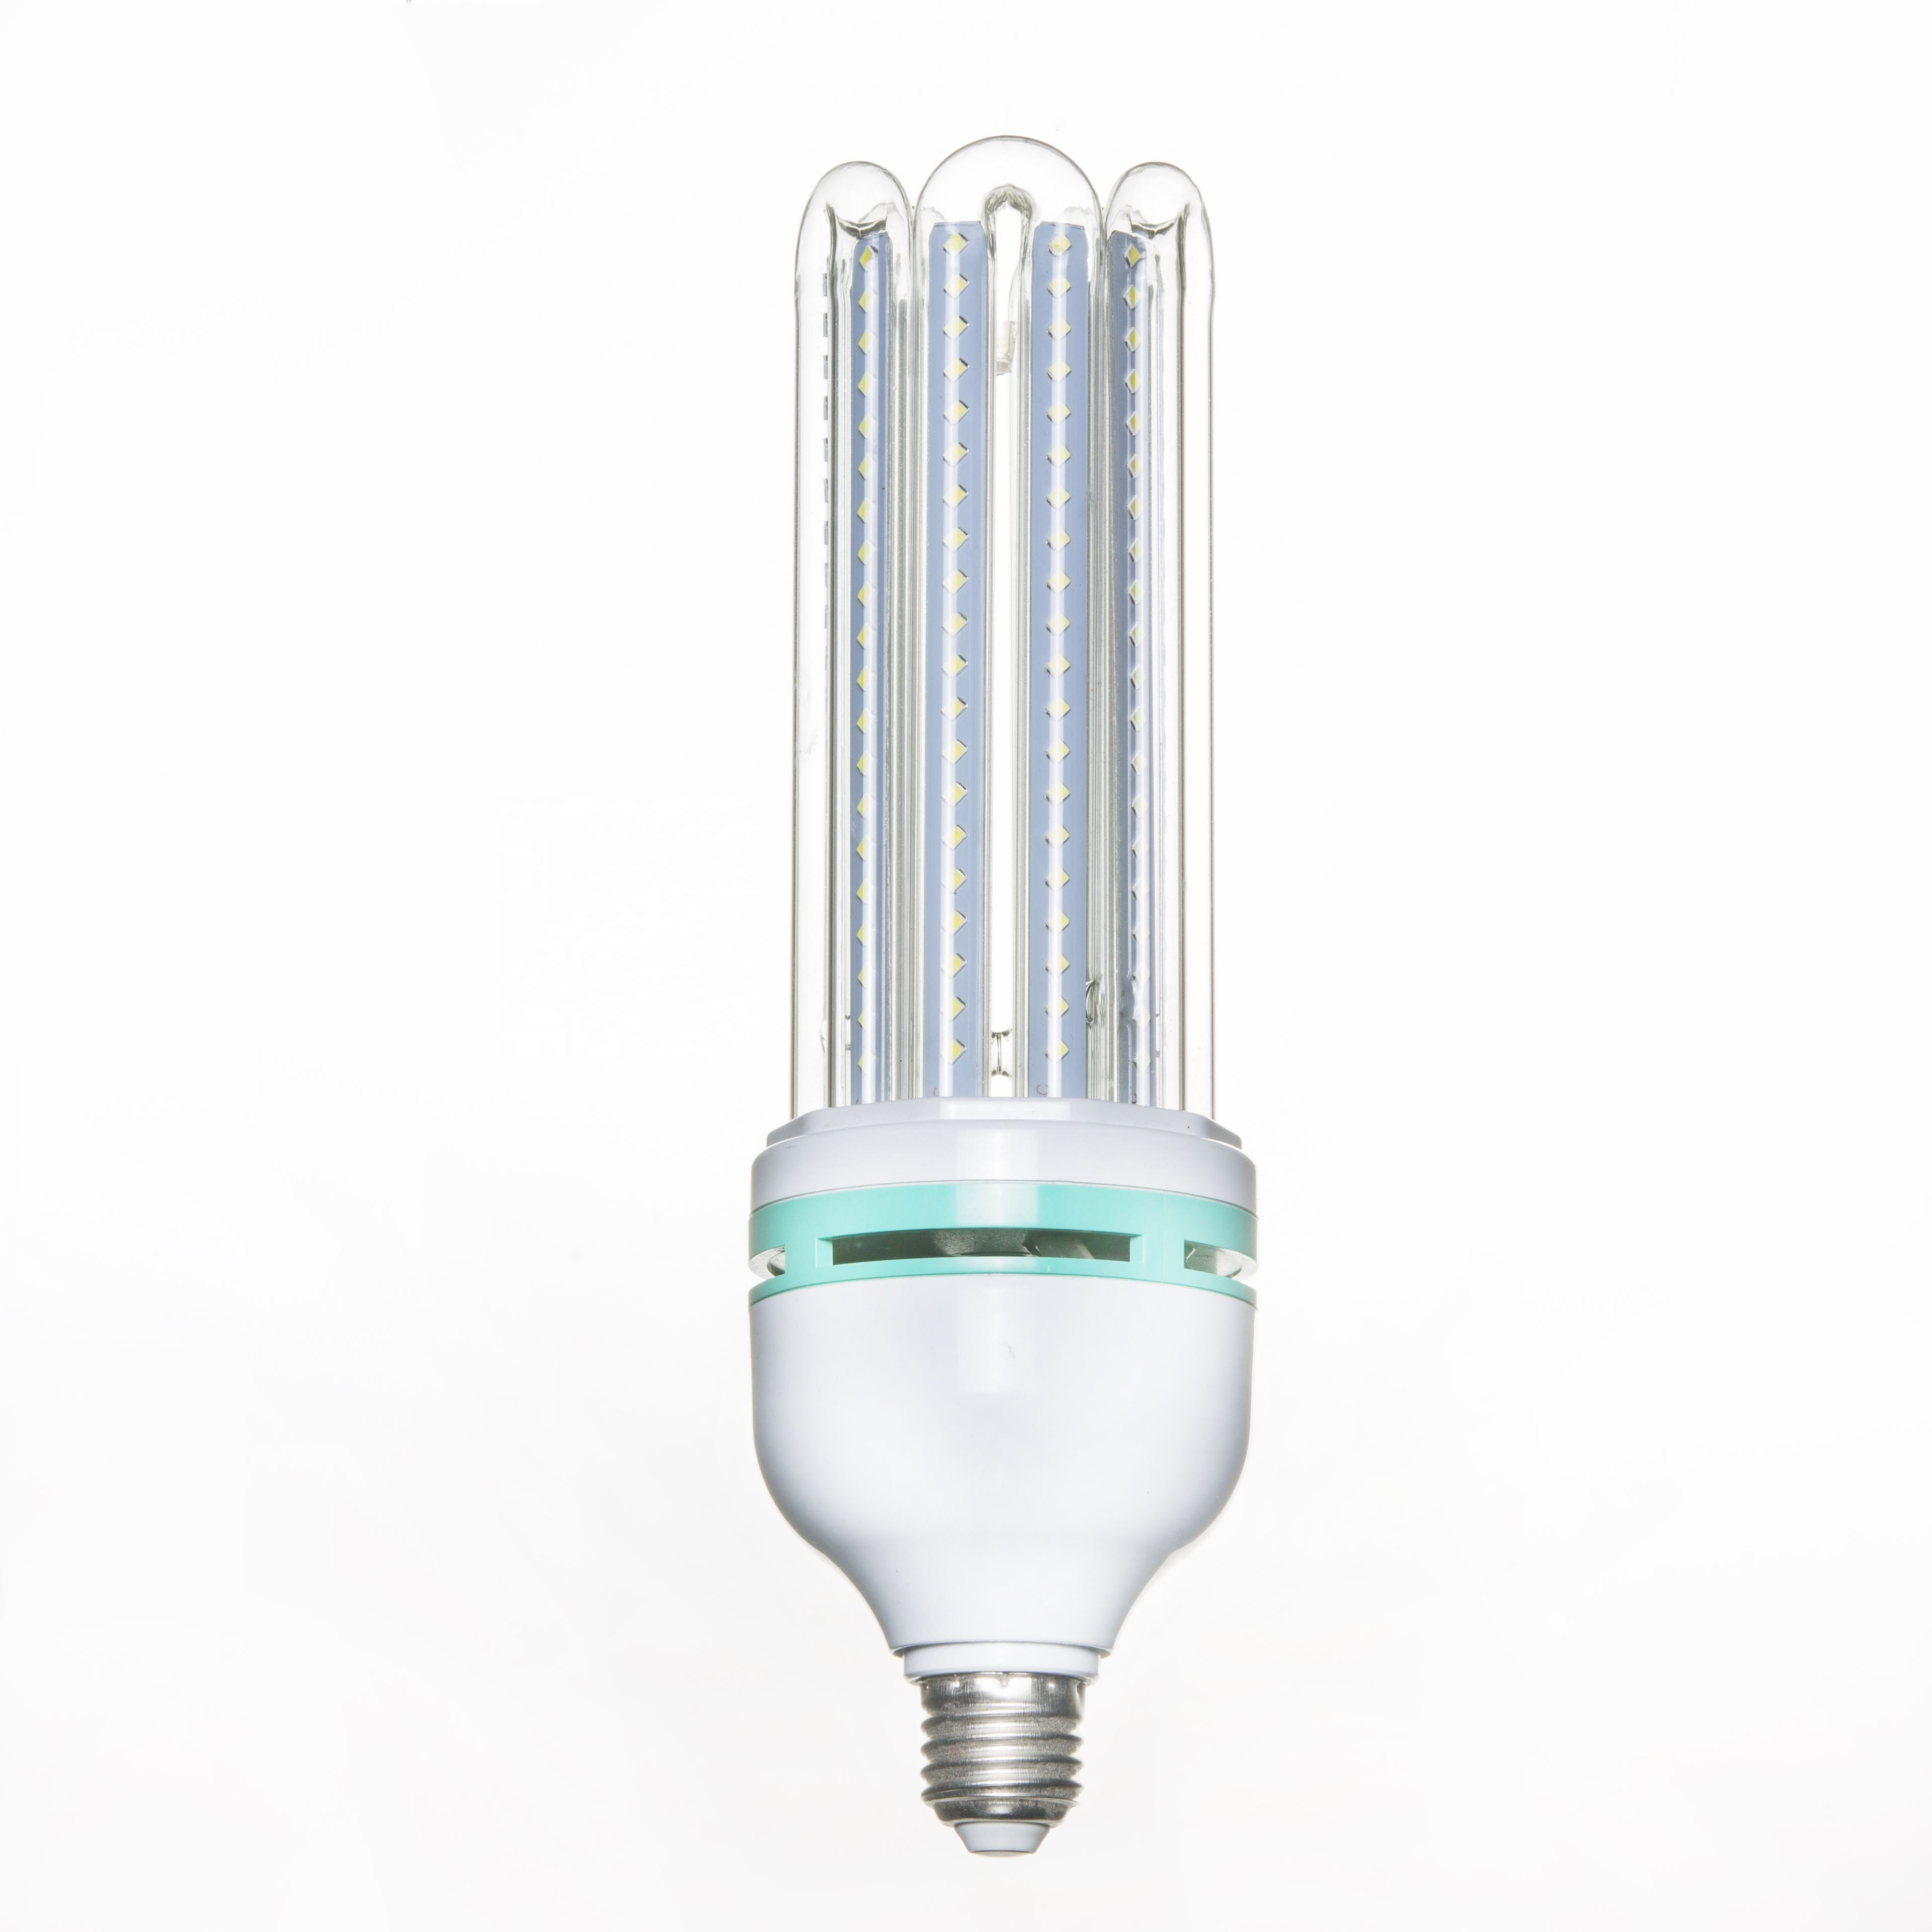 14mm 30W 36W 4U Led Energy Saving lamp Street Corn light bulb made in China Factory